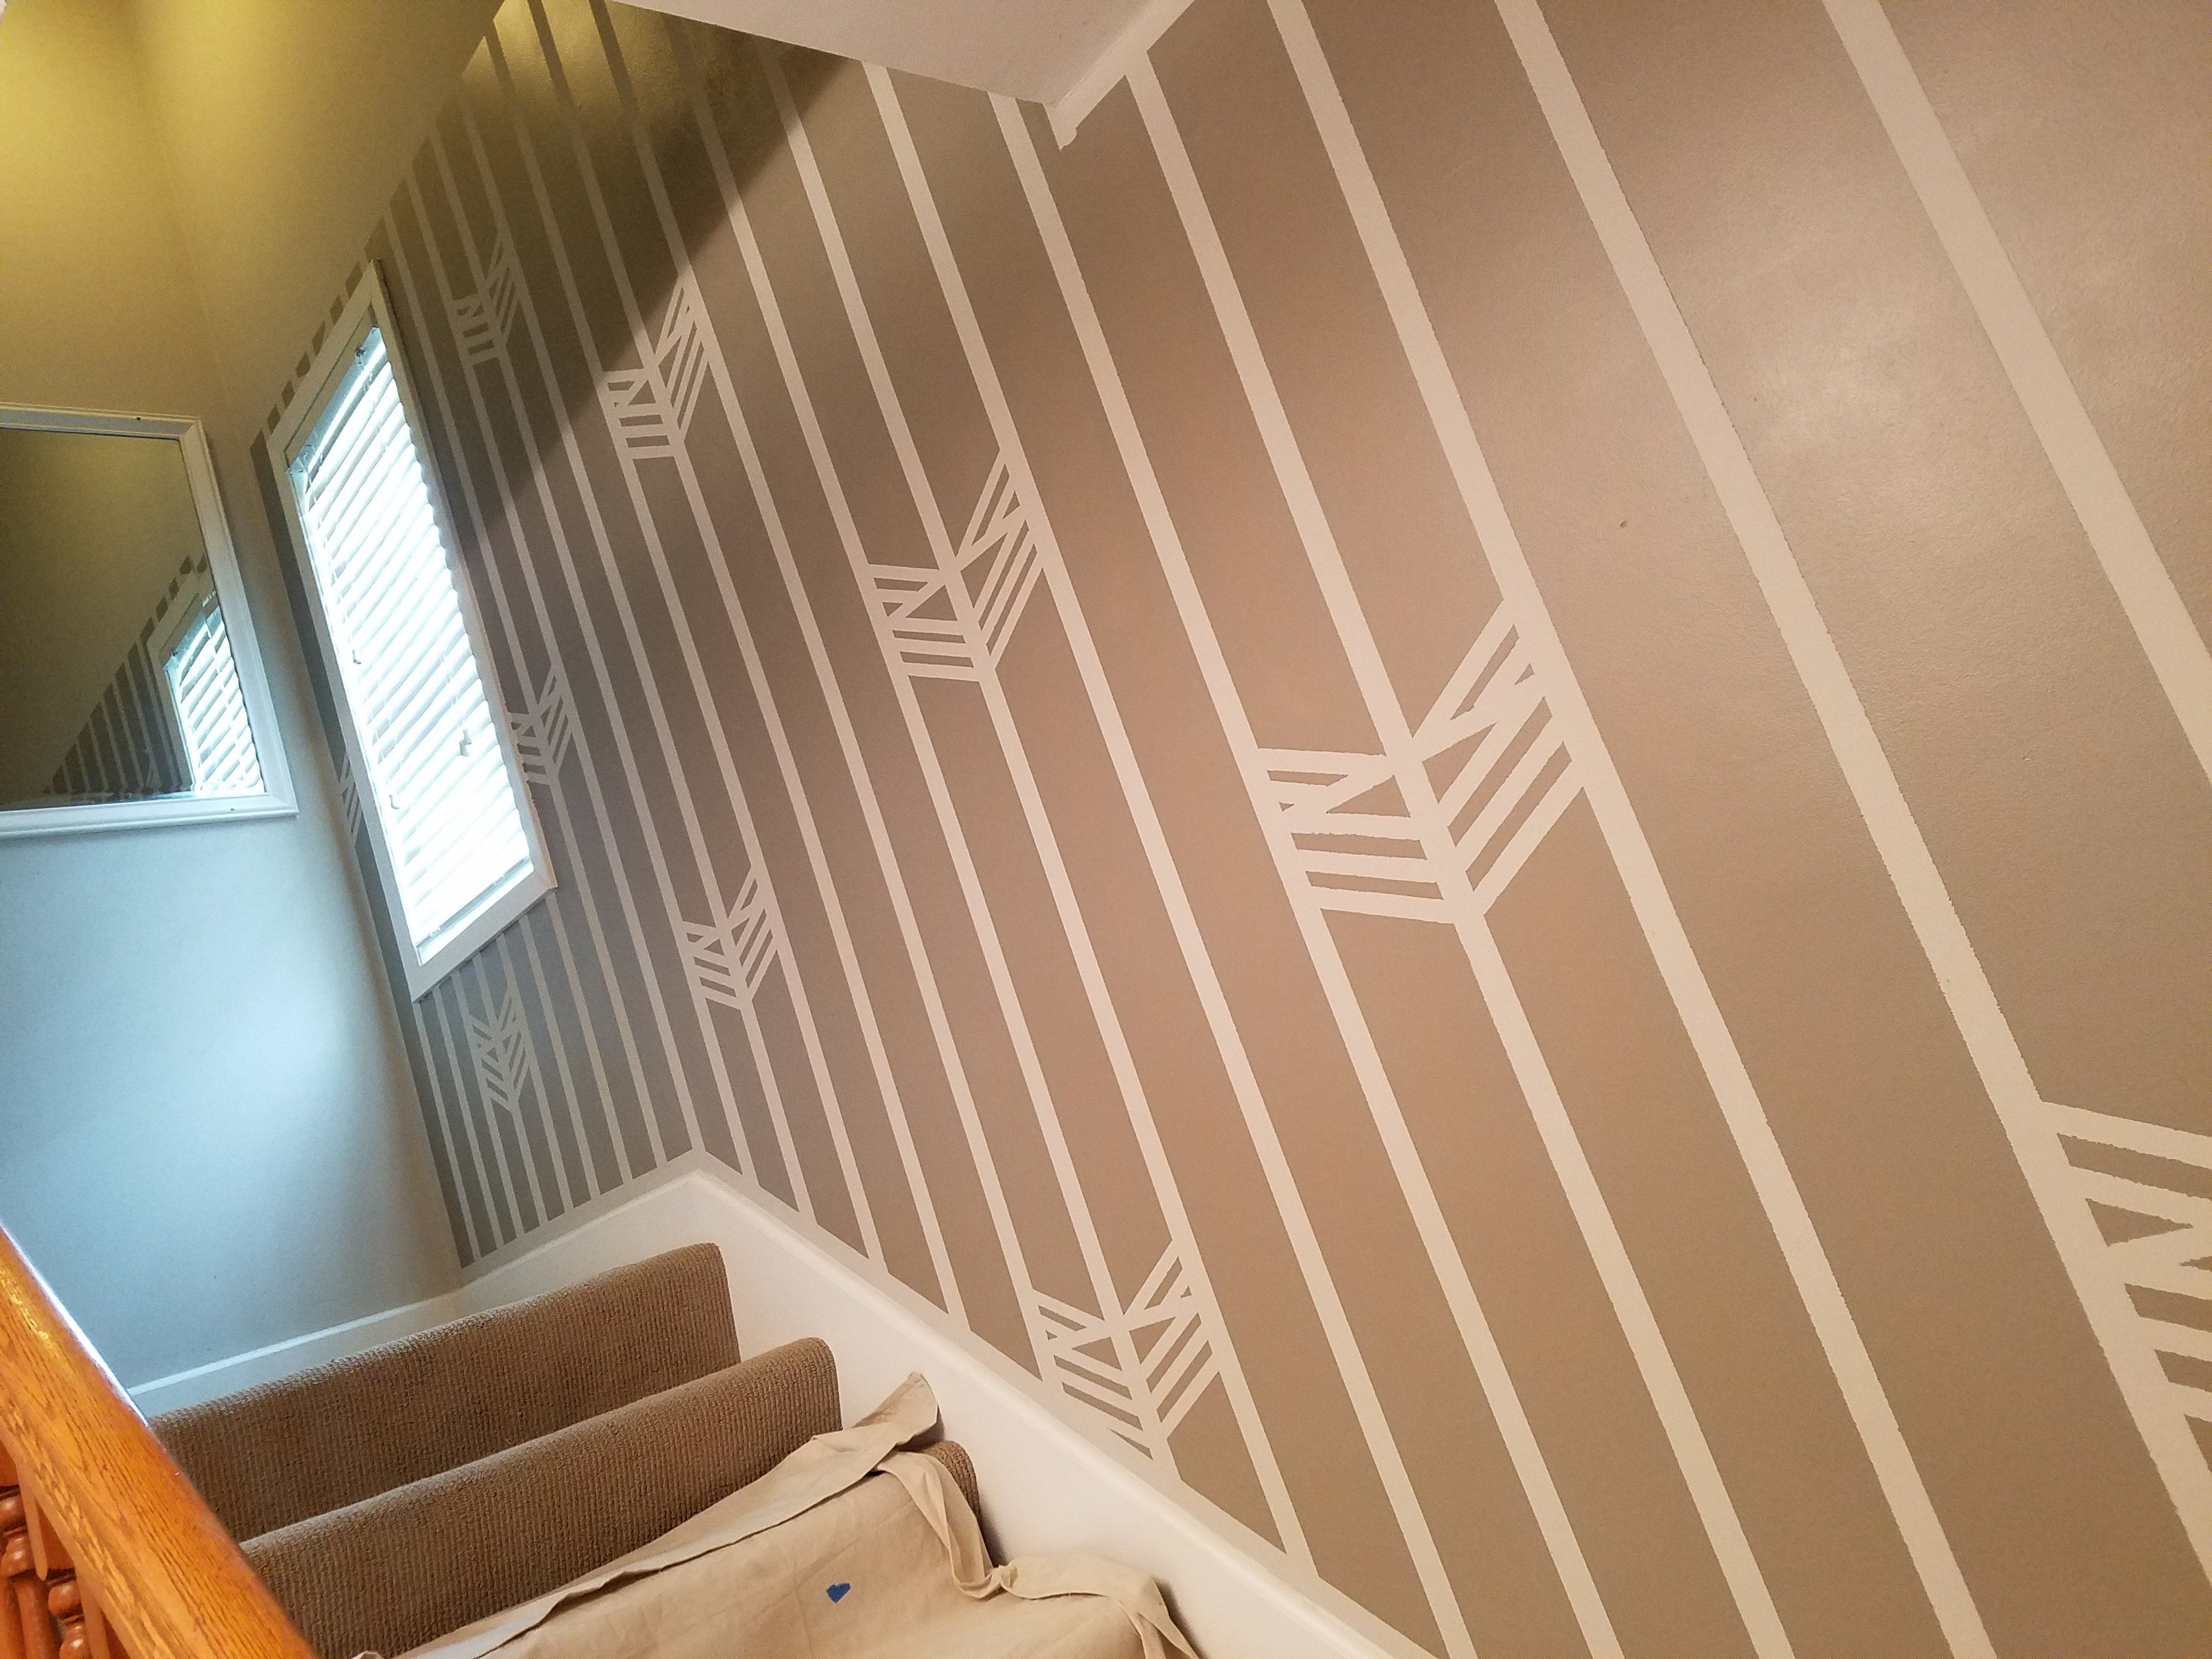 Frank lloyd wright inspired stairwell paint design do t yourself frank lloyd wright inspired stairwell paint design do t yourself woodworking prjt spring is fast mng solutioingenieria Image collections